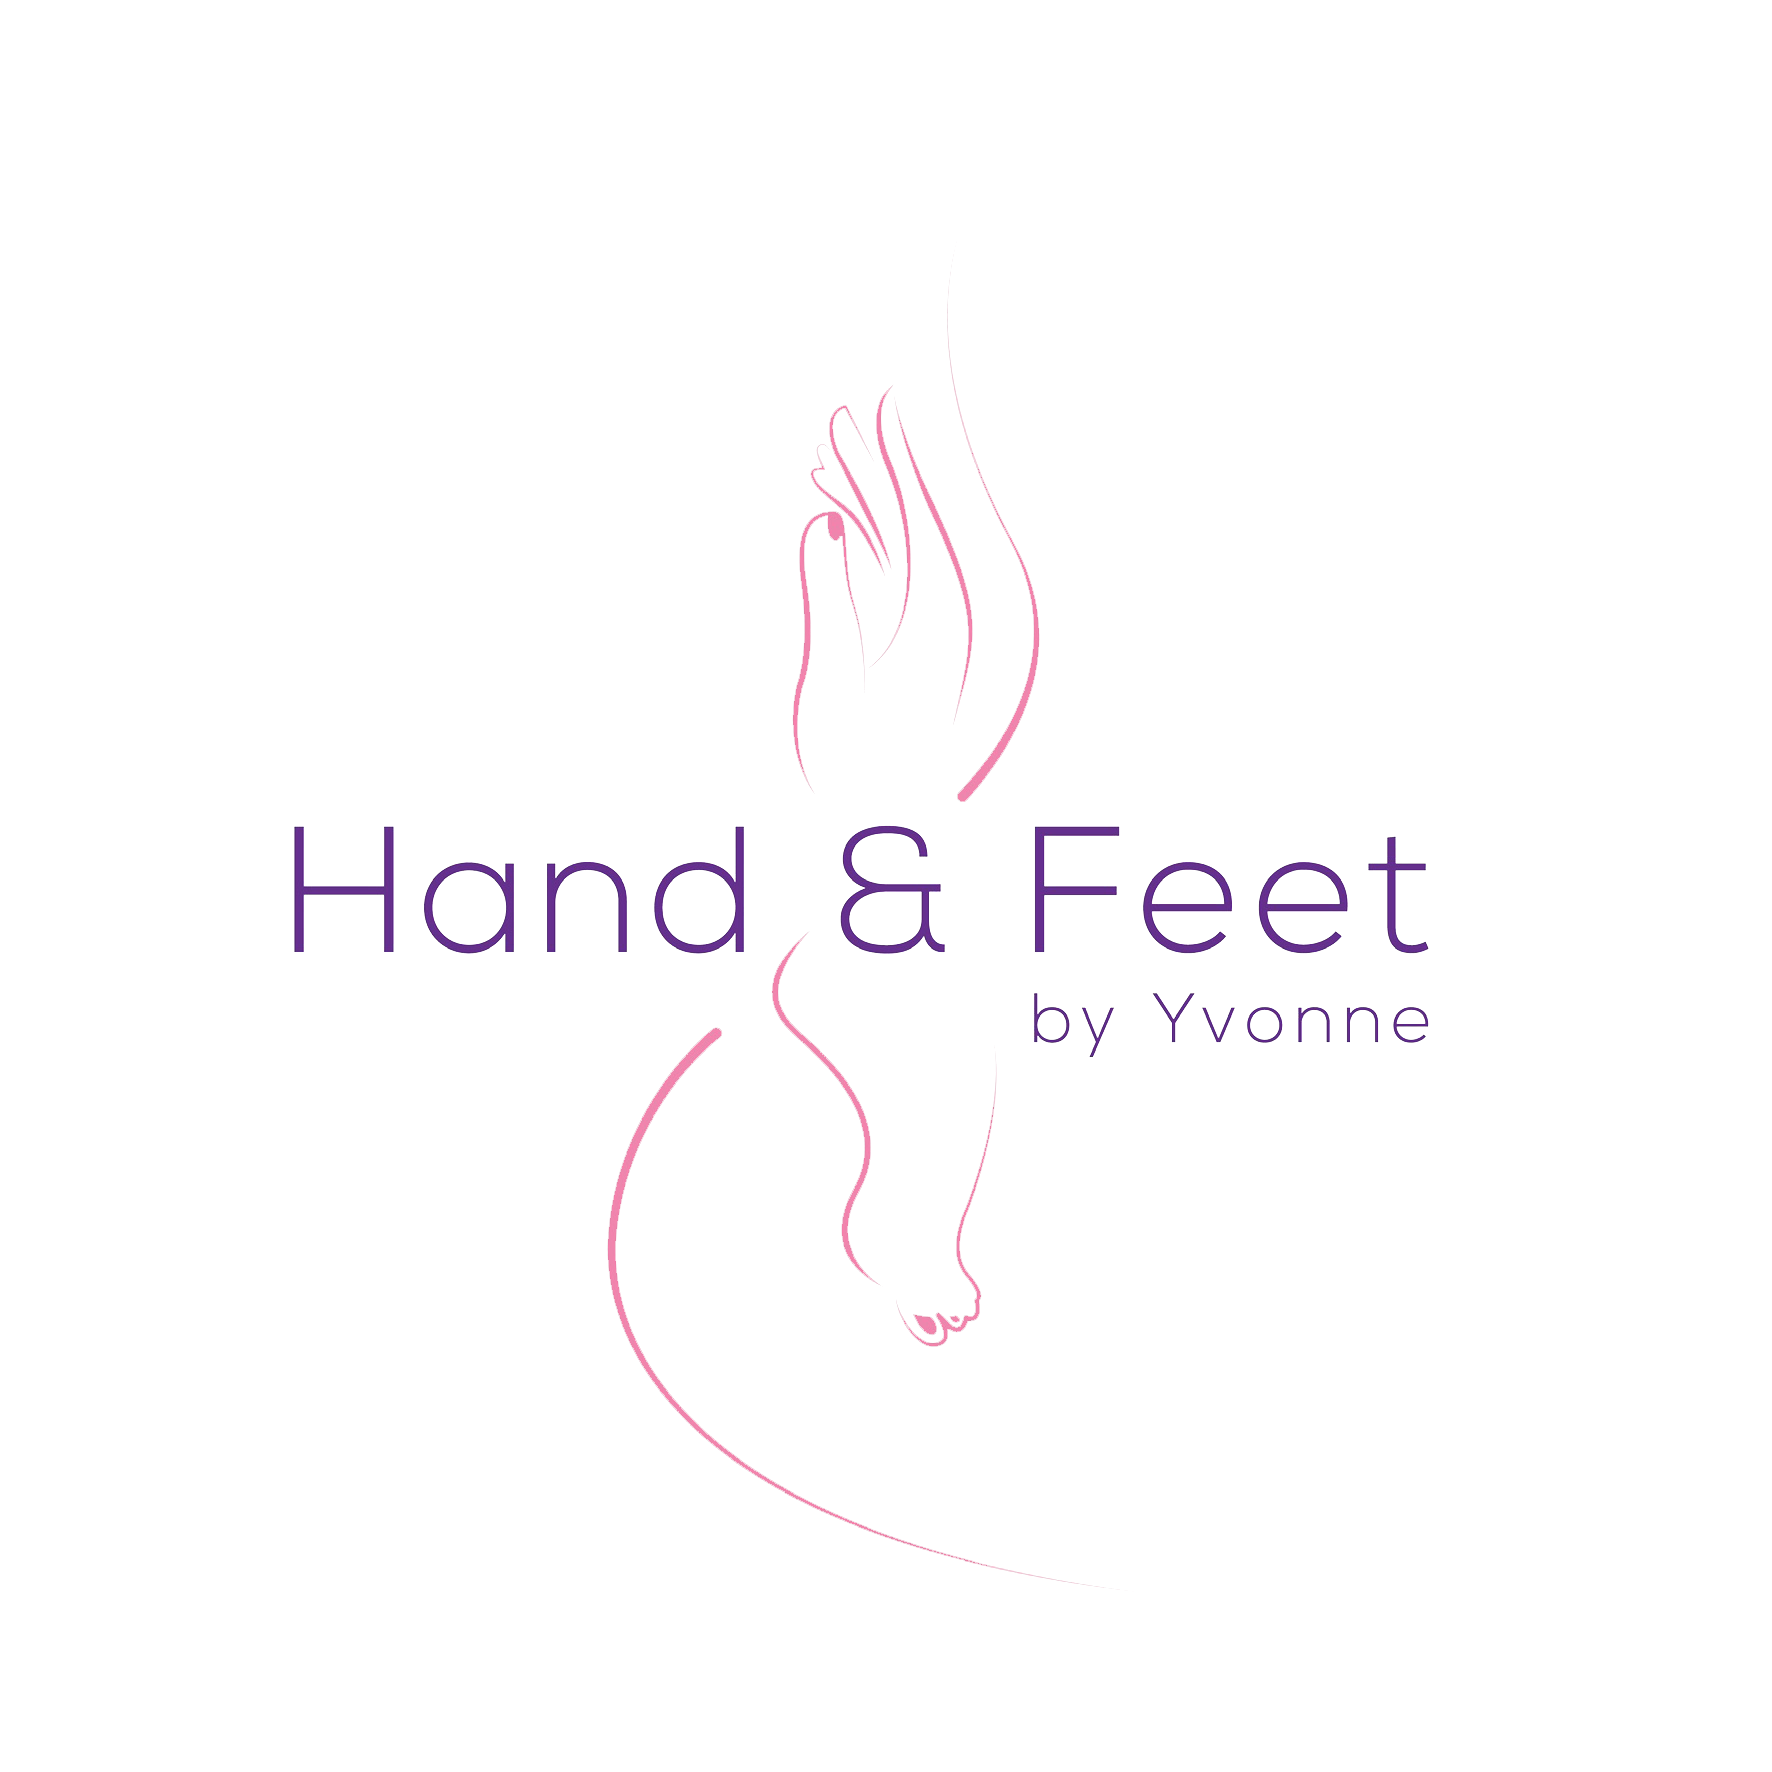 Hand and Feet by Yvonne